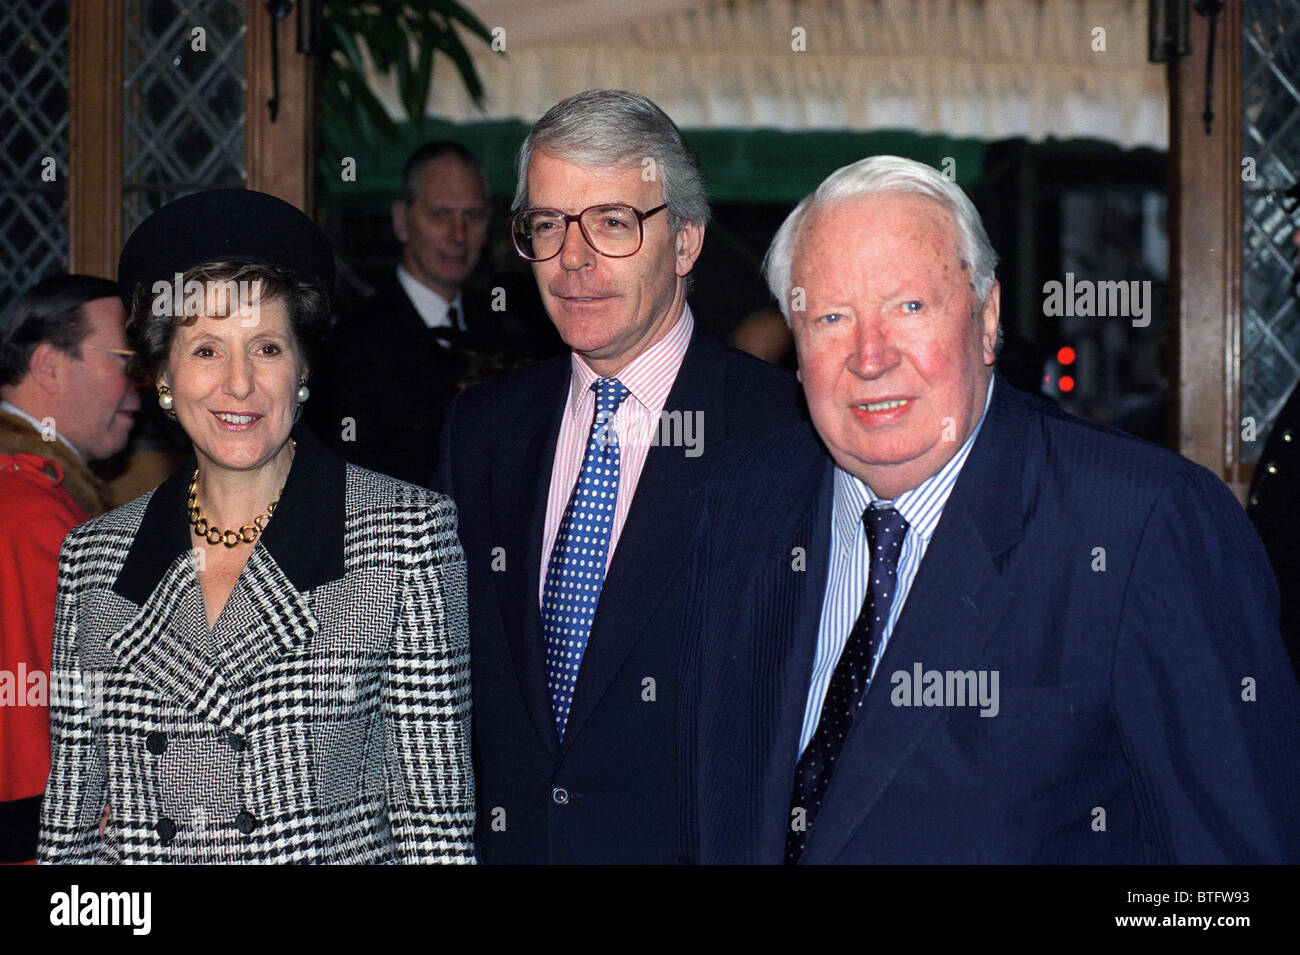 FORMER PRIME MINISTER JOHN MAJOR AND WIFE NORMA WITH TED HEATH (FORMER PRIME MINISTER) AT THE GUILDHALL, LONDON - Stock Image